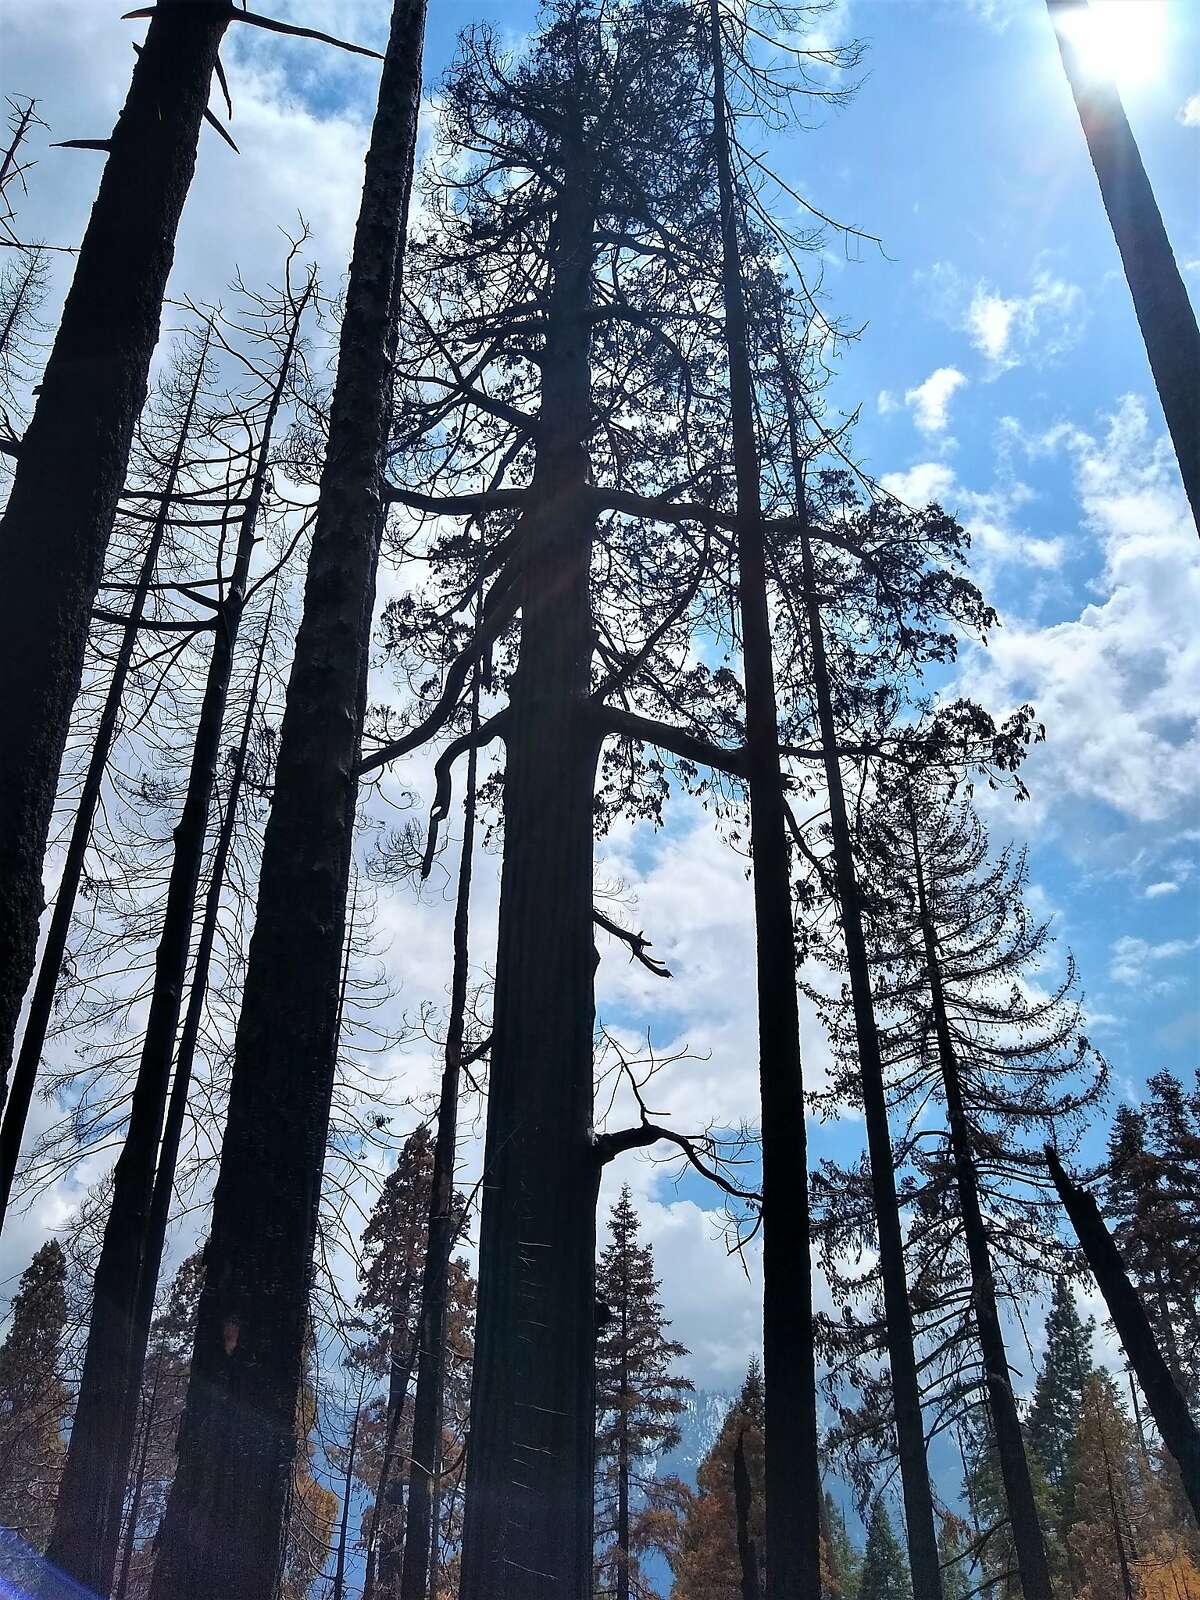 The 2020 Castle Fire ravaged the Board Camp Grove of sequoias in Sequoia National Park.